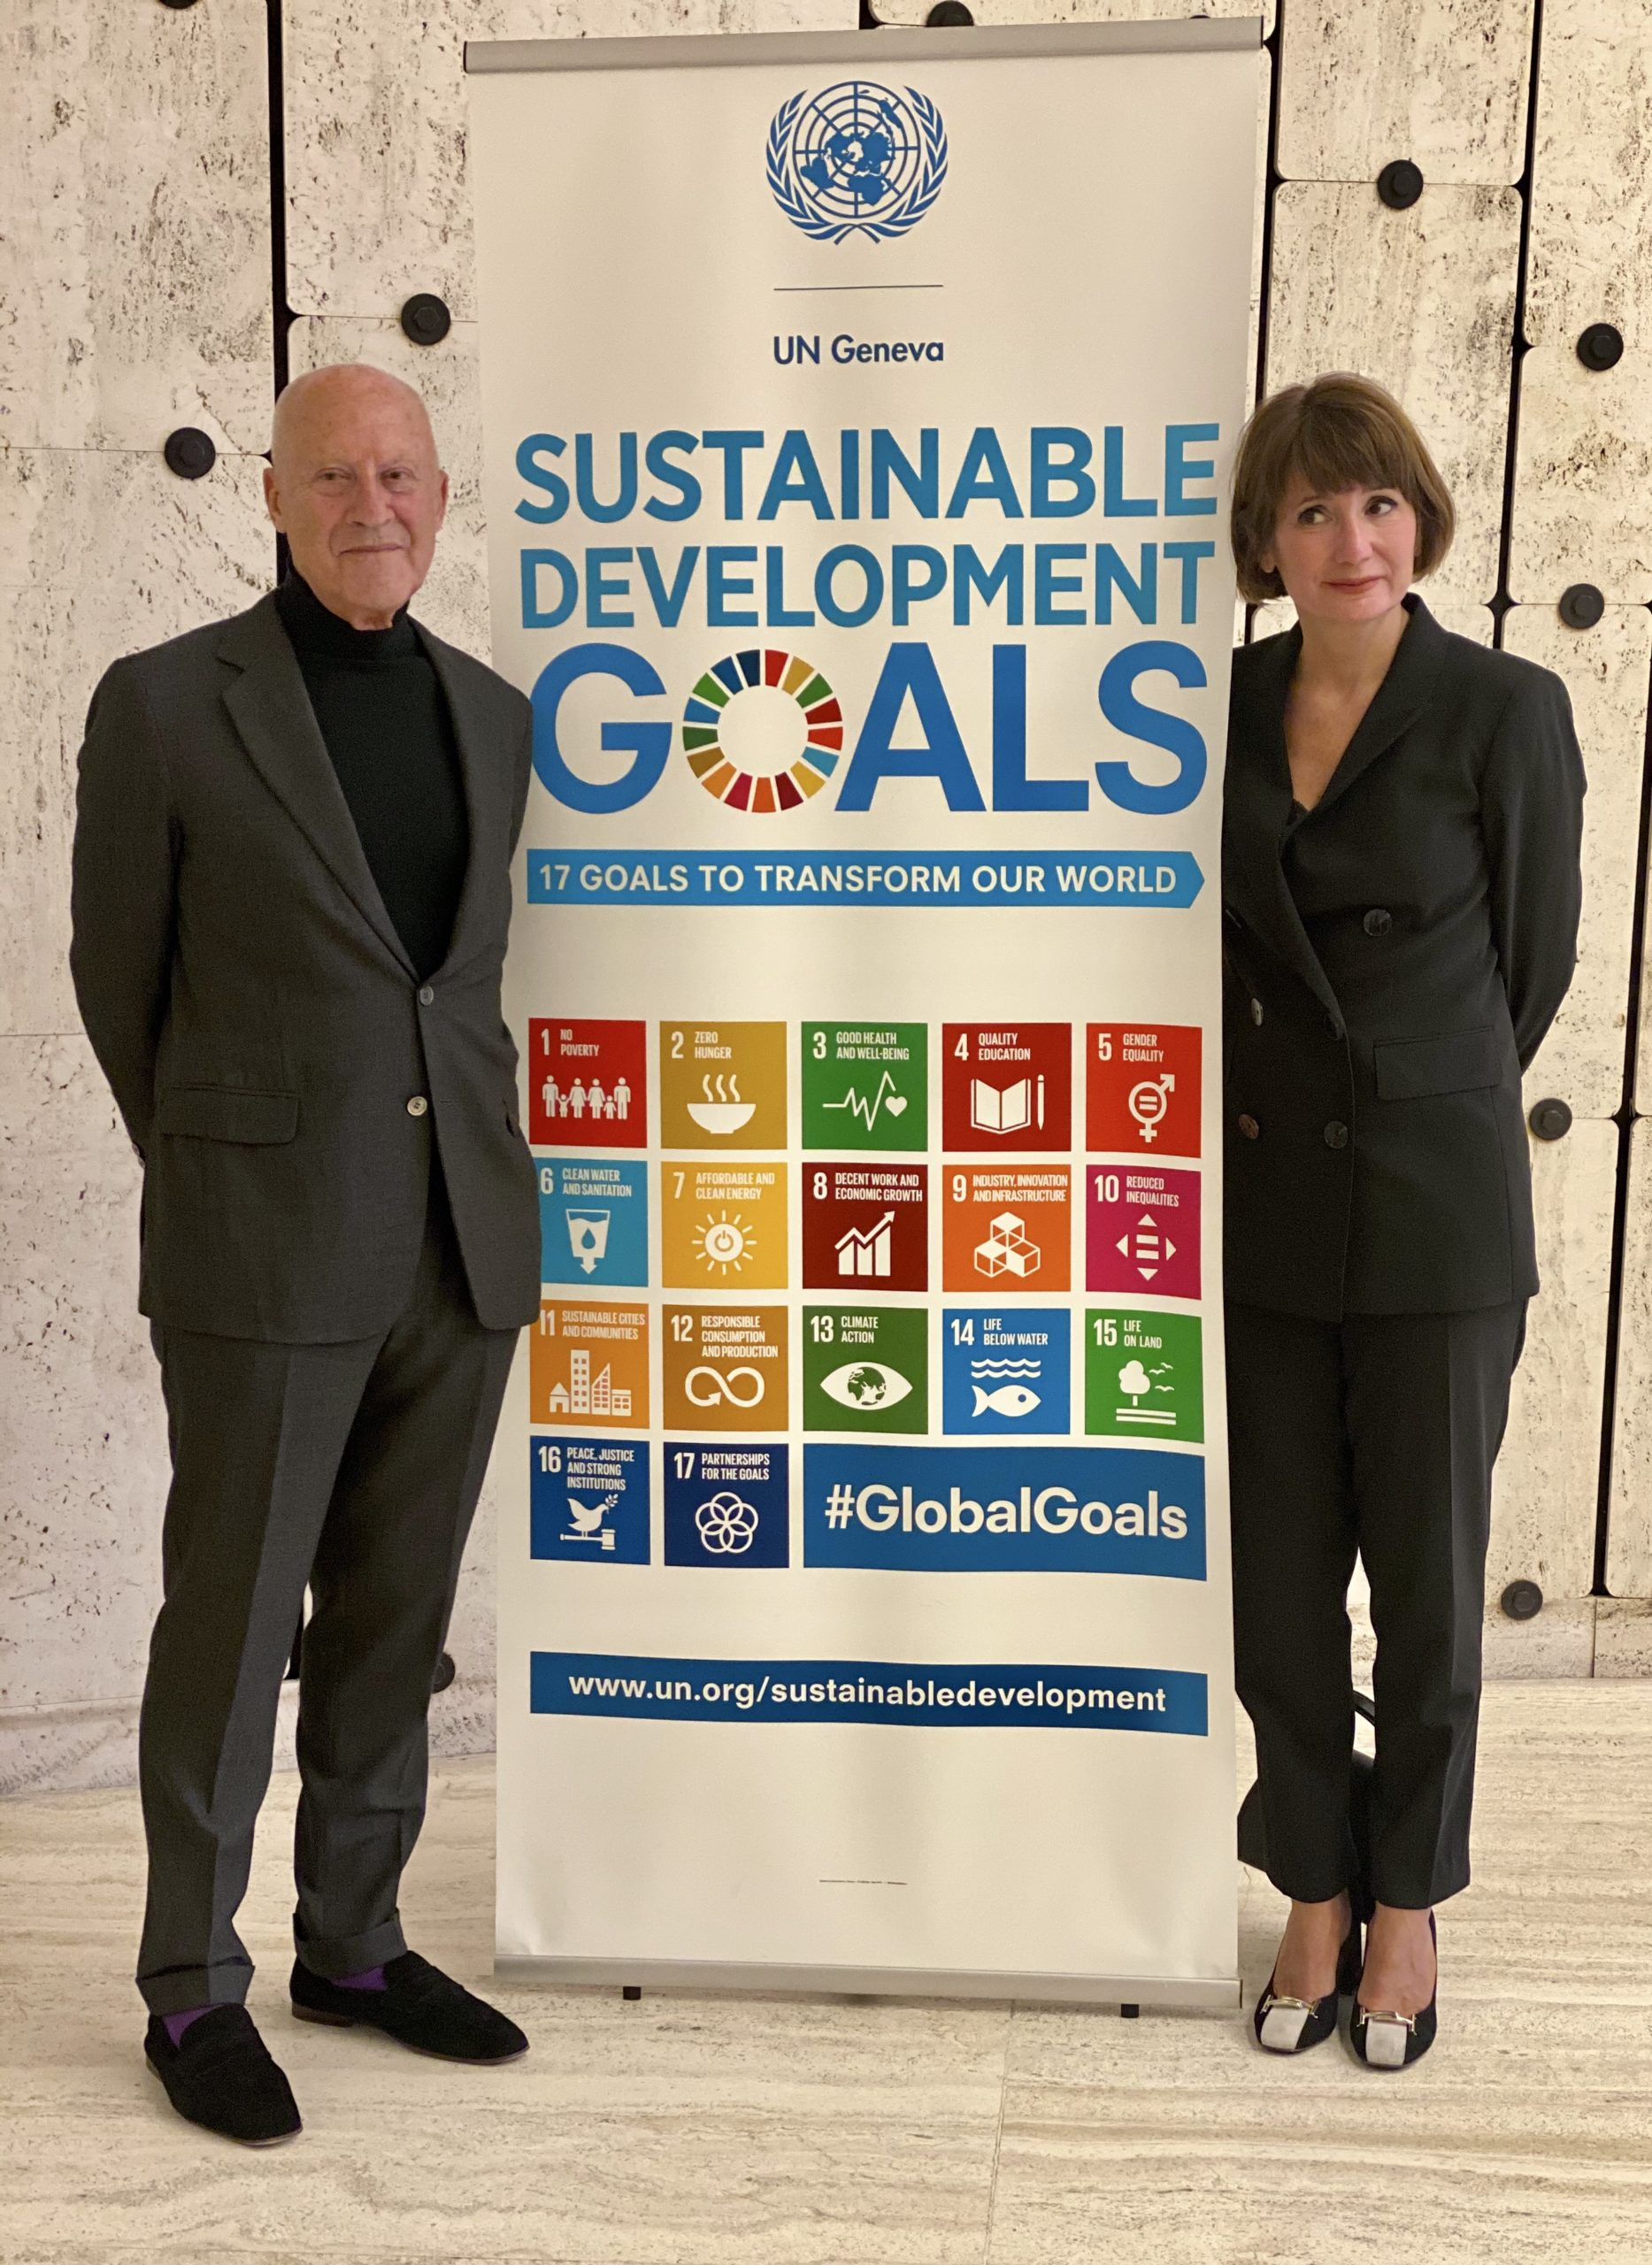 Caption: Lord Foster with Paola Deda during the Forum of Mayors 2020. Palais des Nations, October 6, 2020. © Paola Deda